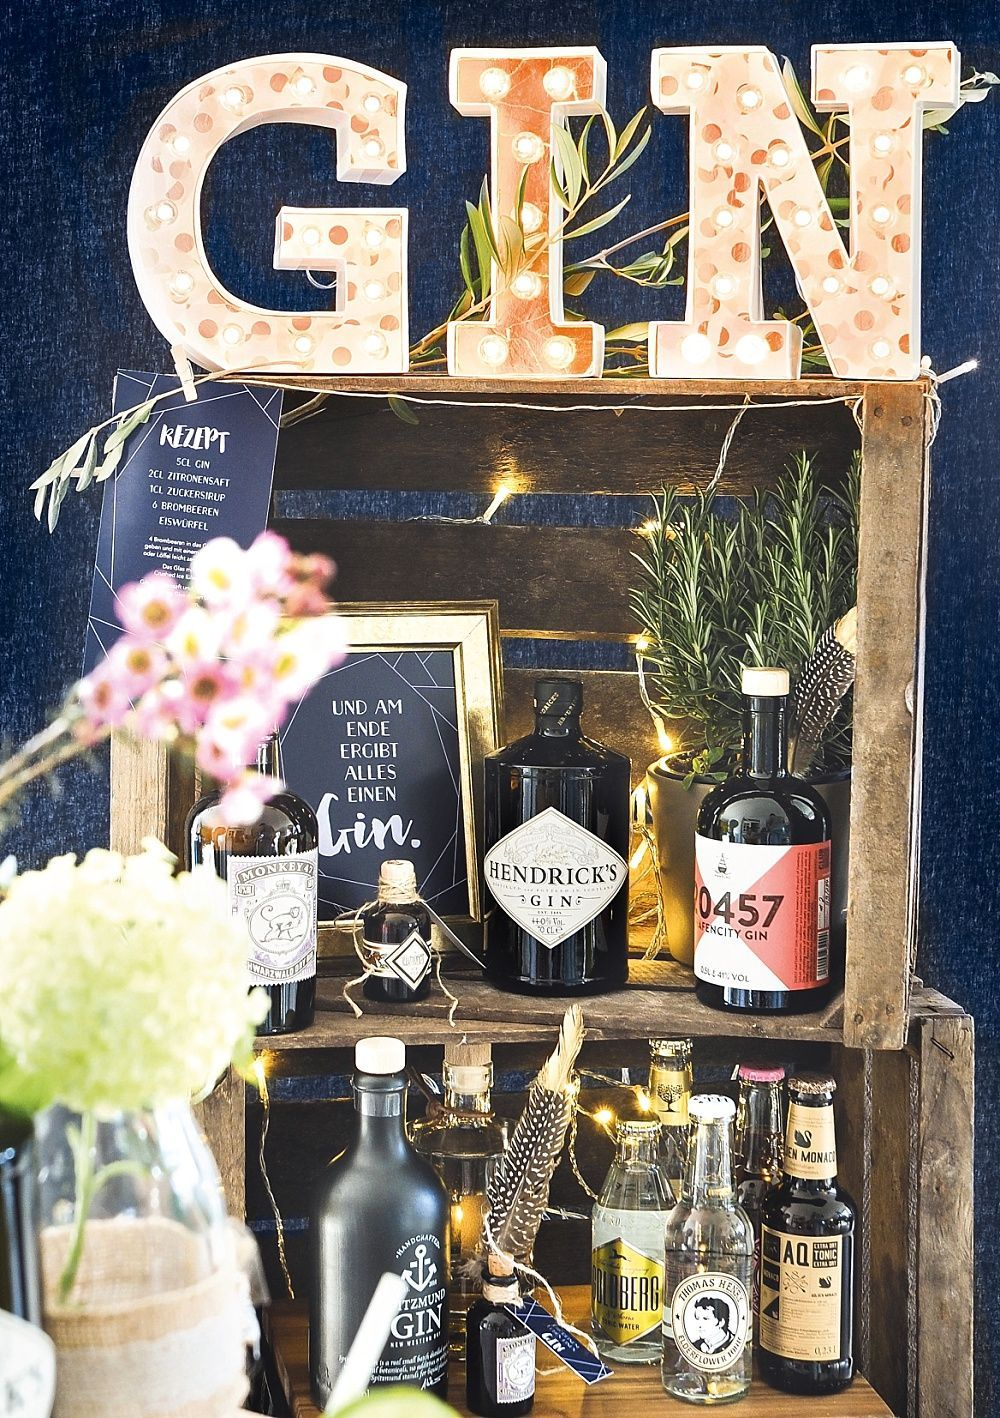 Diy Gin Bar Yourself For The Wedding In 2020 Diy Wedding Bar Gin Bar Diy Bar